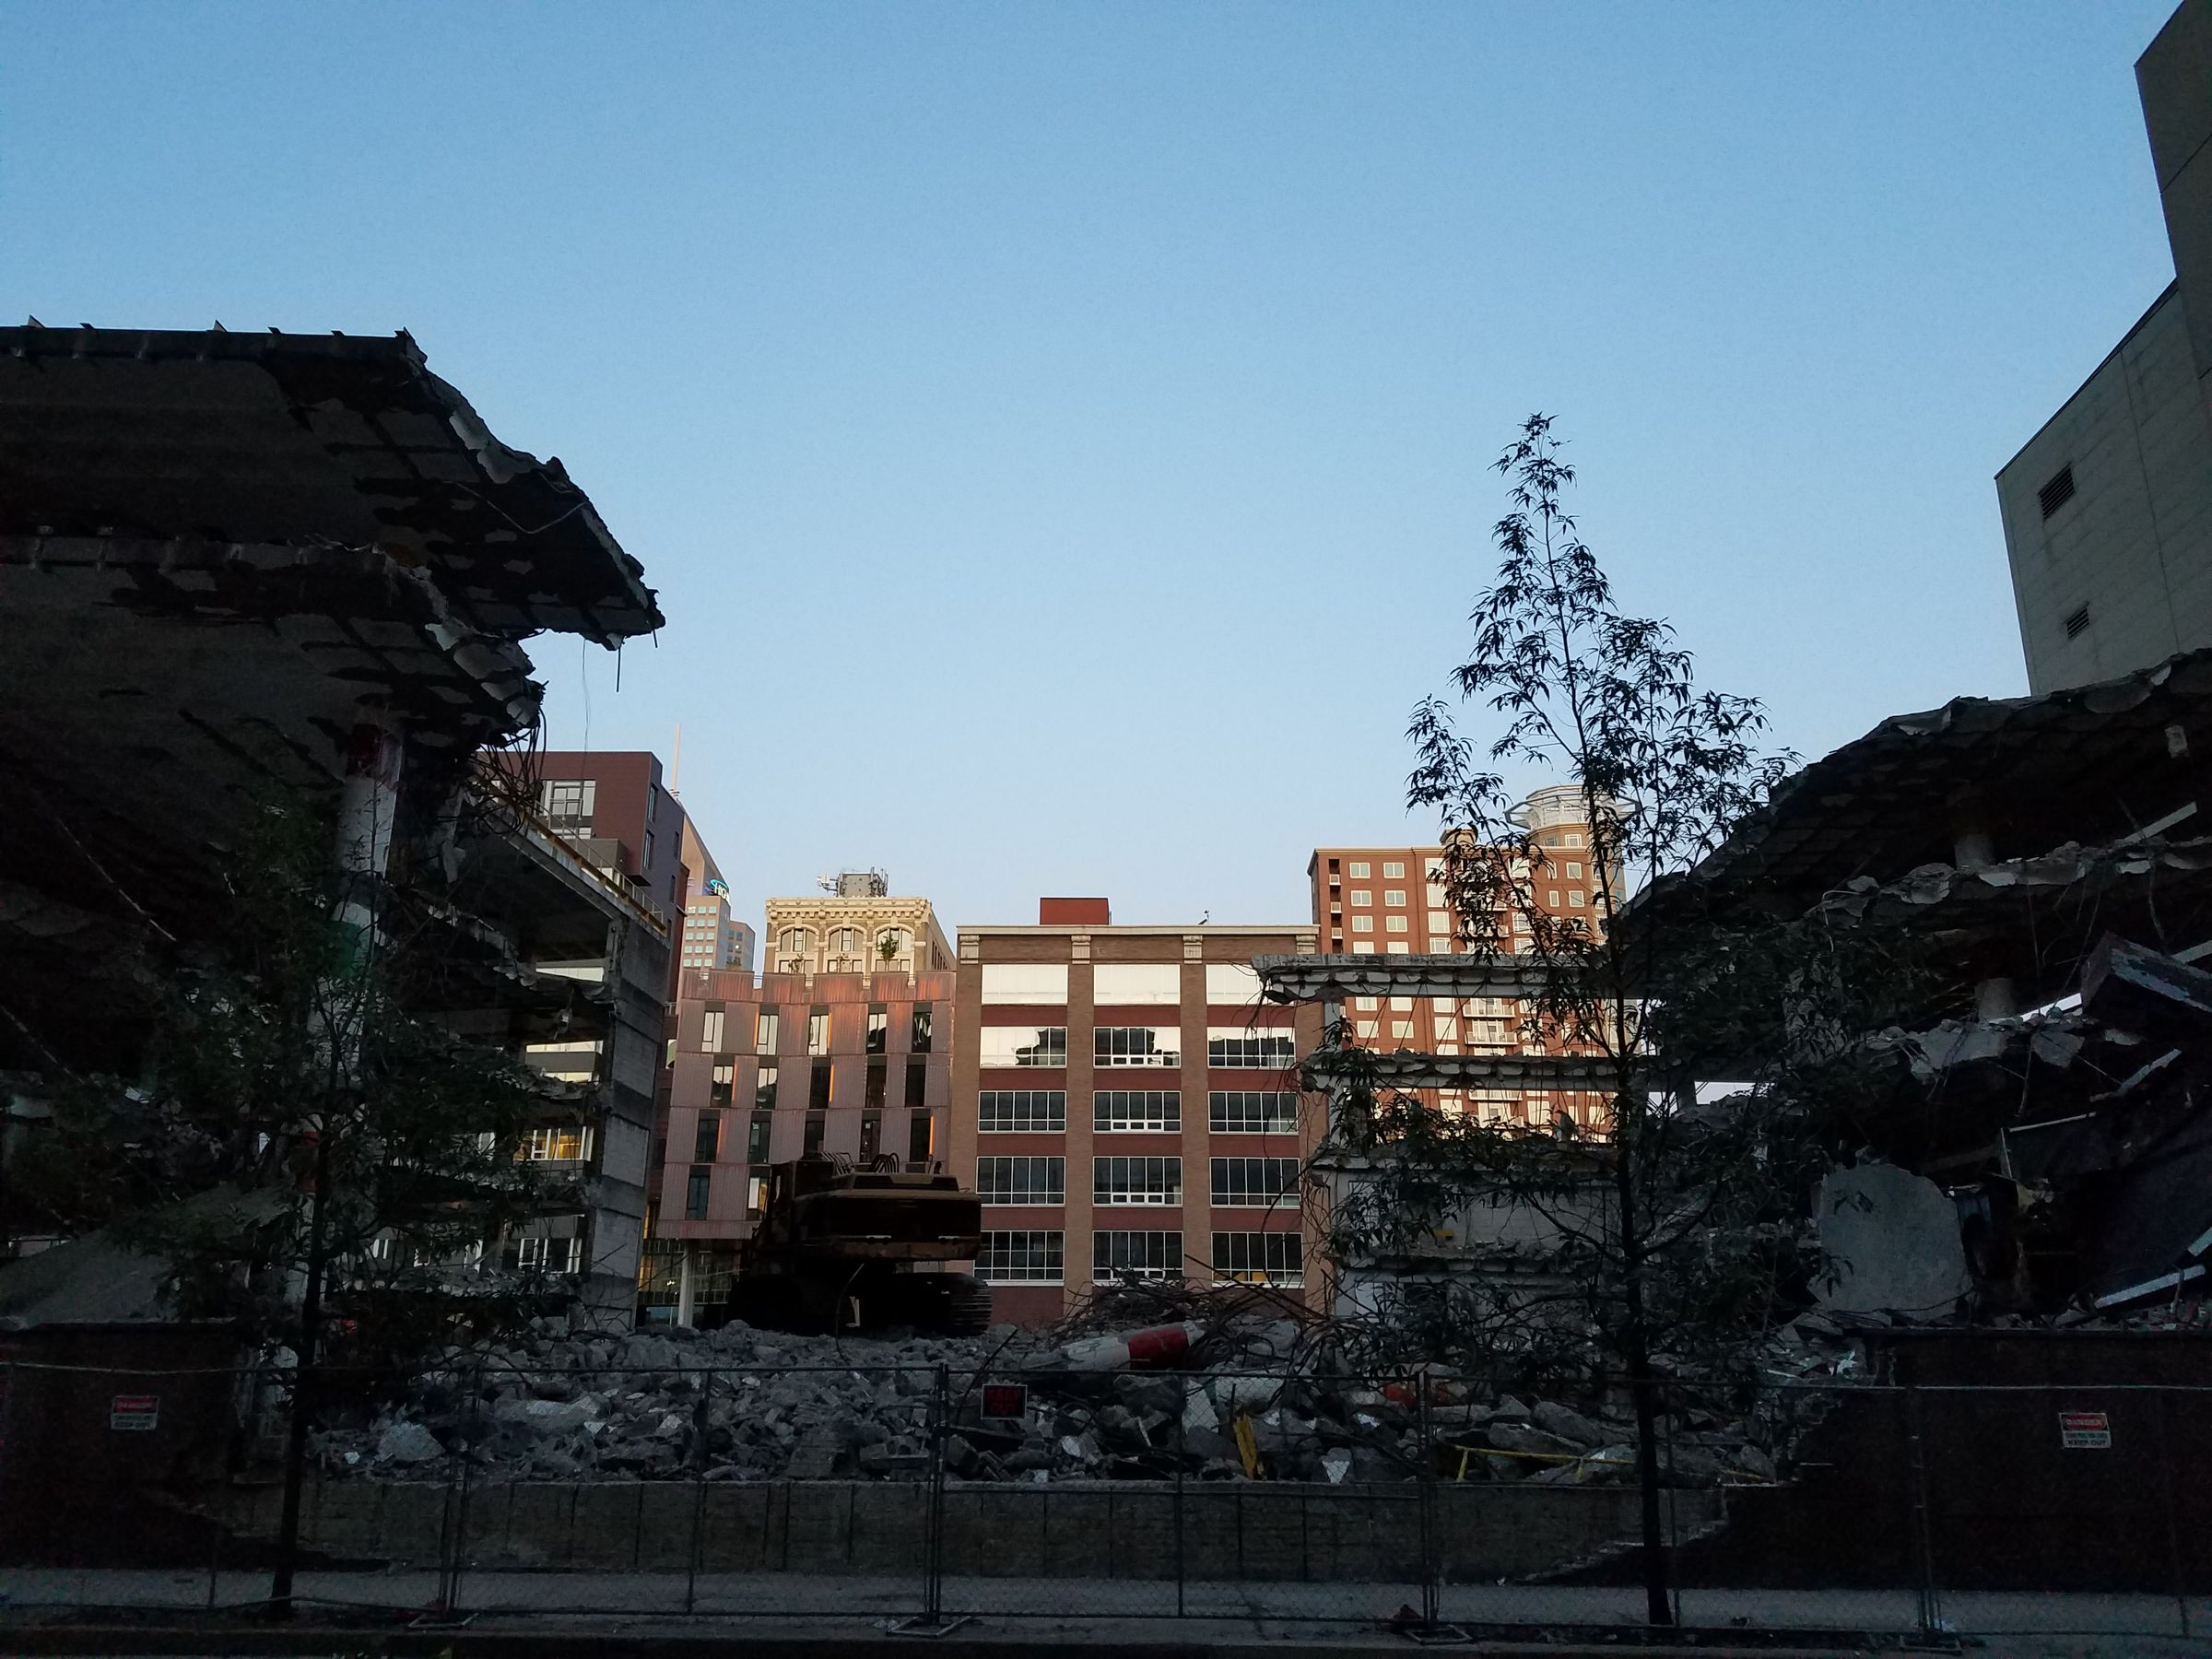 A partly demolished parking garage. It looks like there is literally a bite taken out of it. The multi-level garage is intact on the left and right sides of the photo, but the space between is a pile of rubble. You can see the next city block behind it.